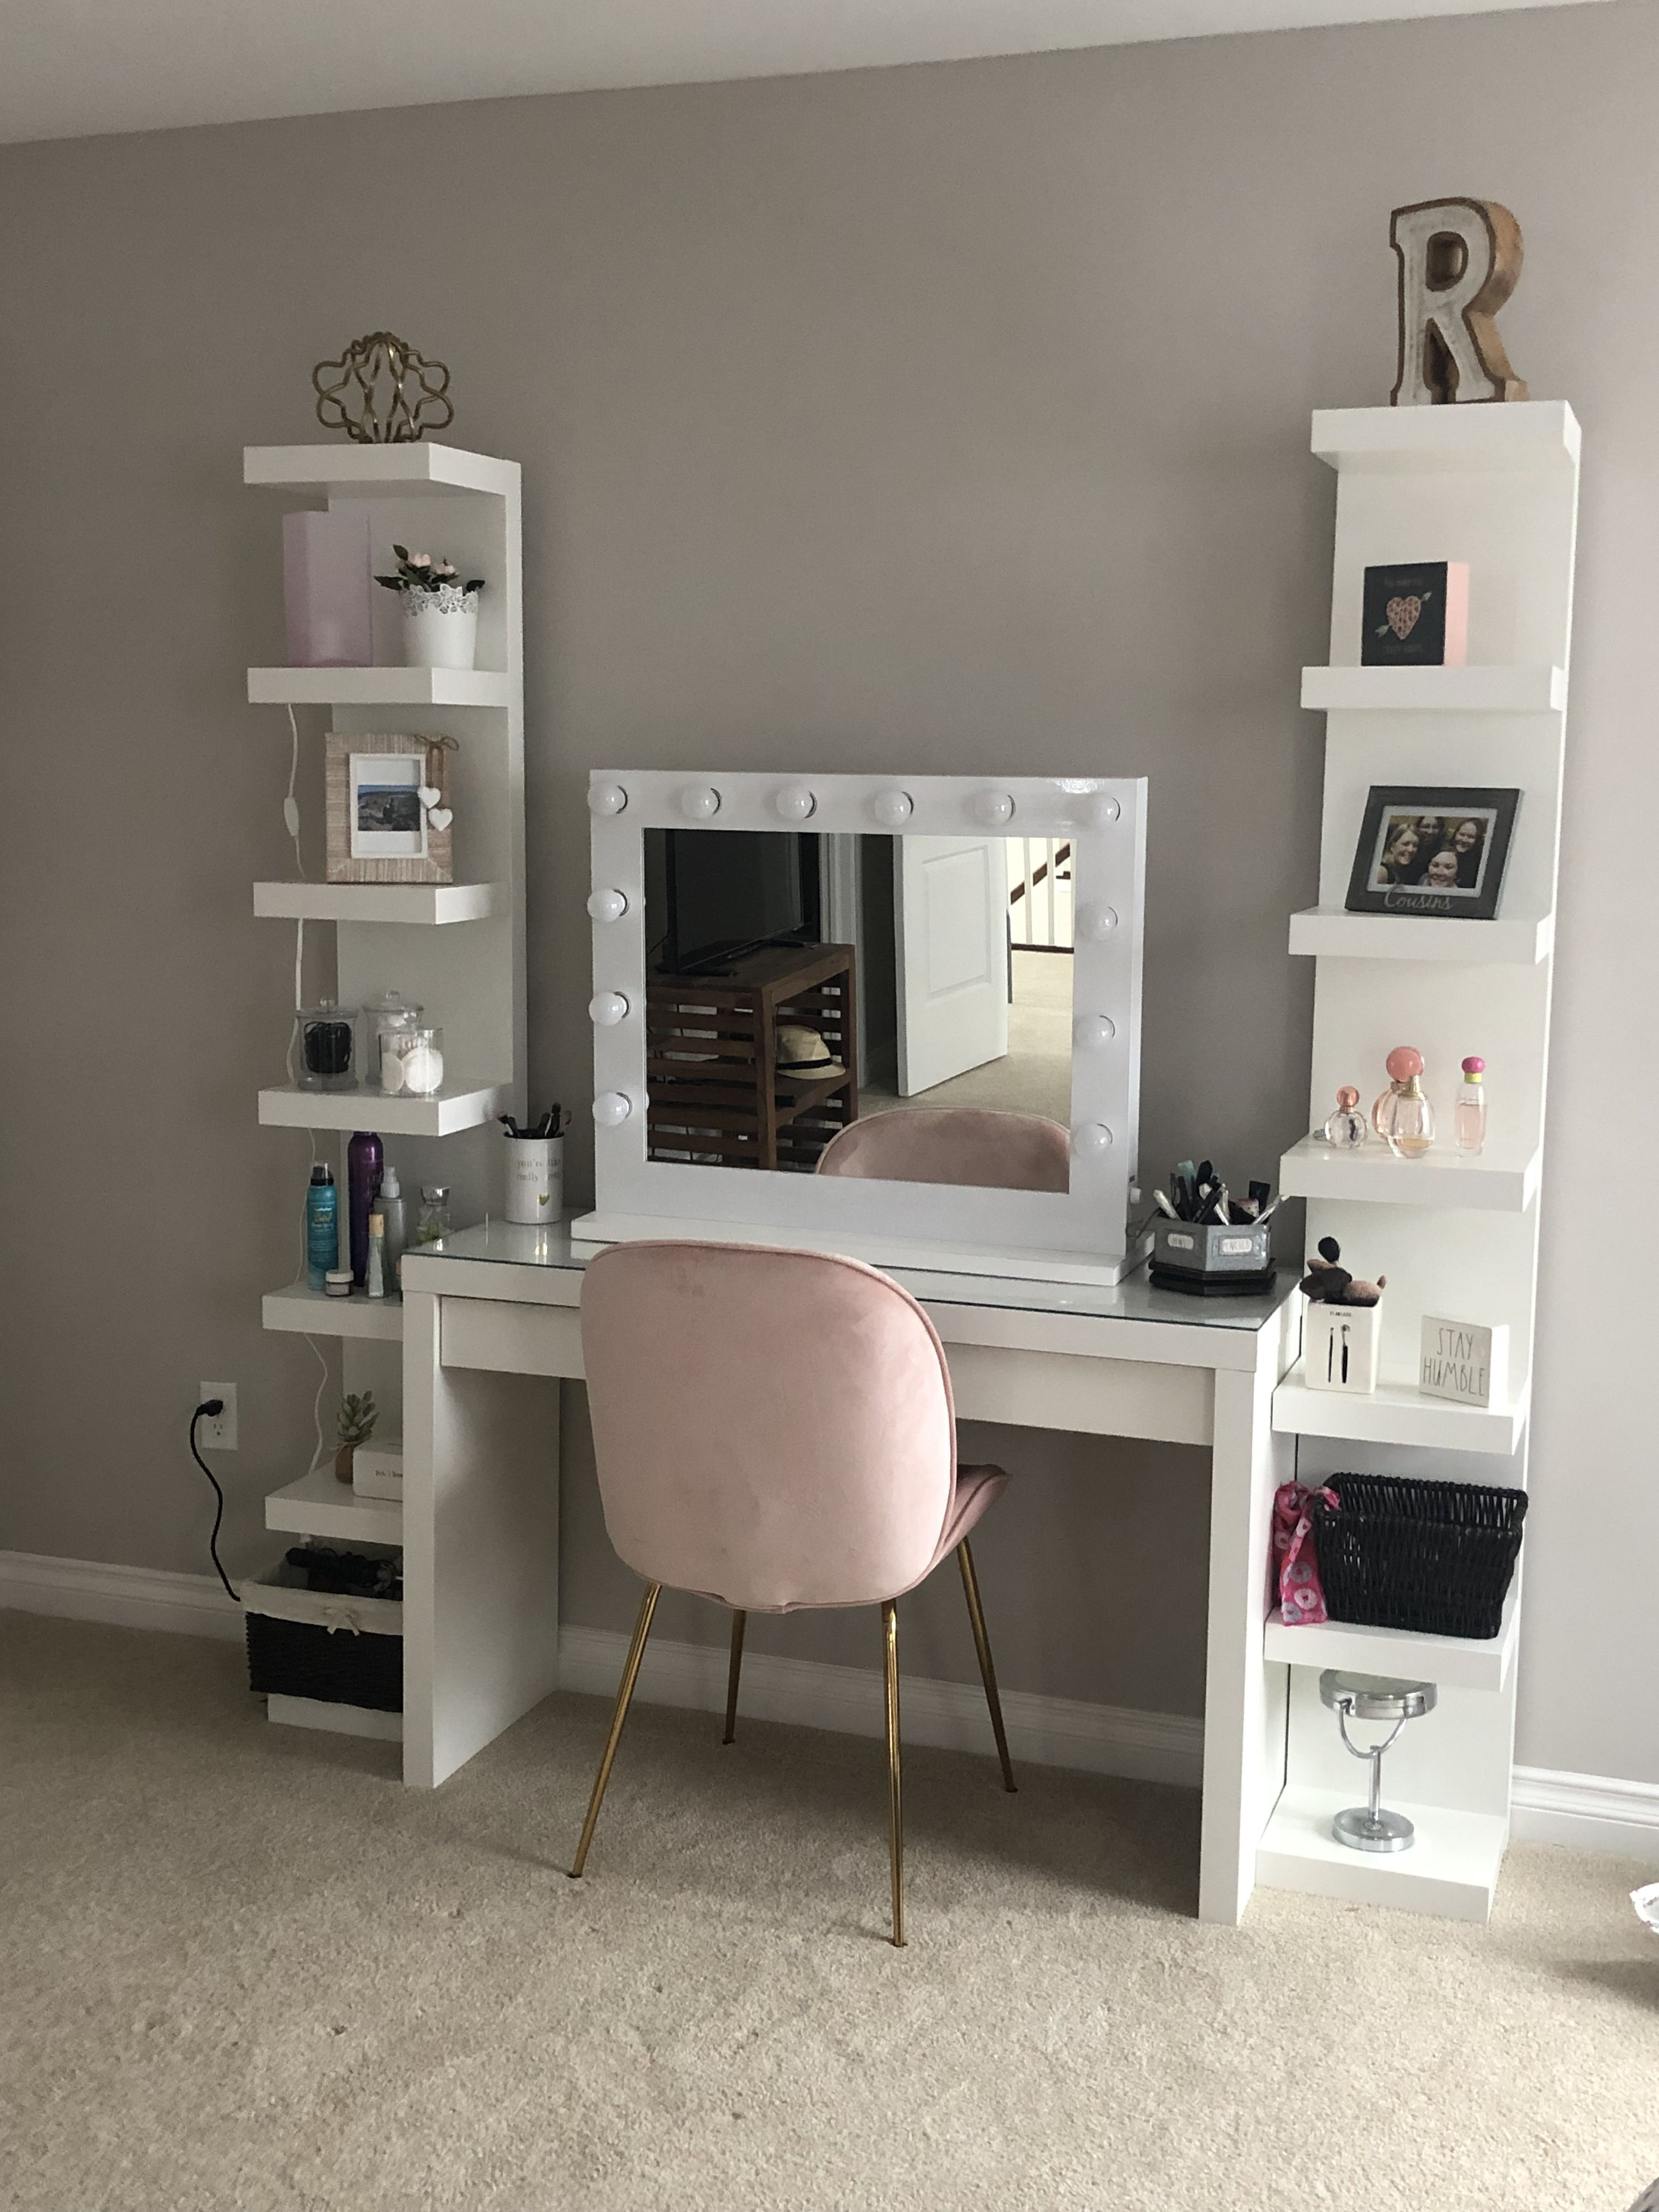 ikea desk with shelves and pink chair and mirror from